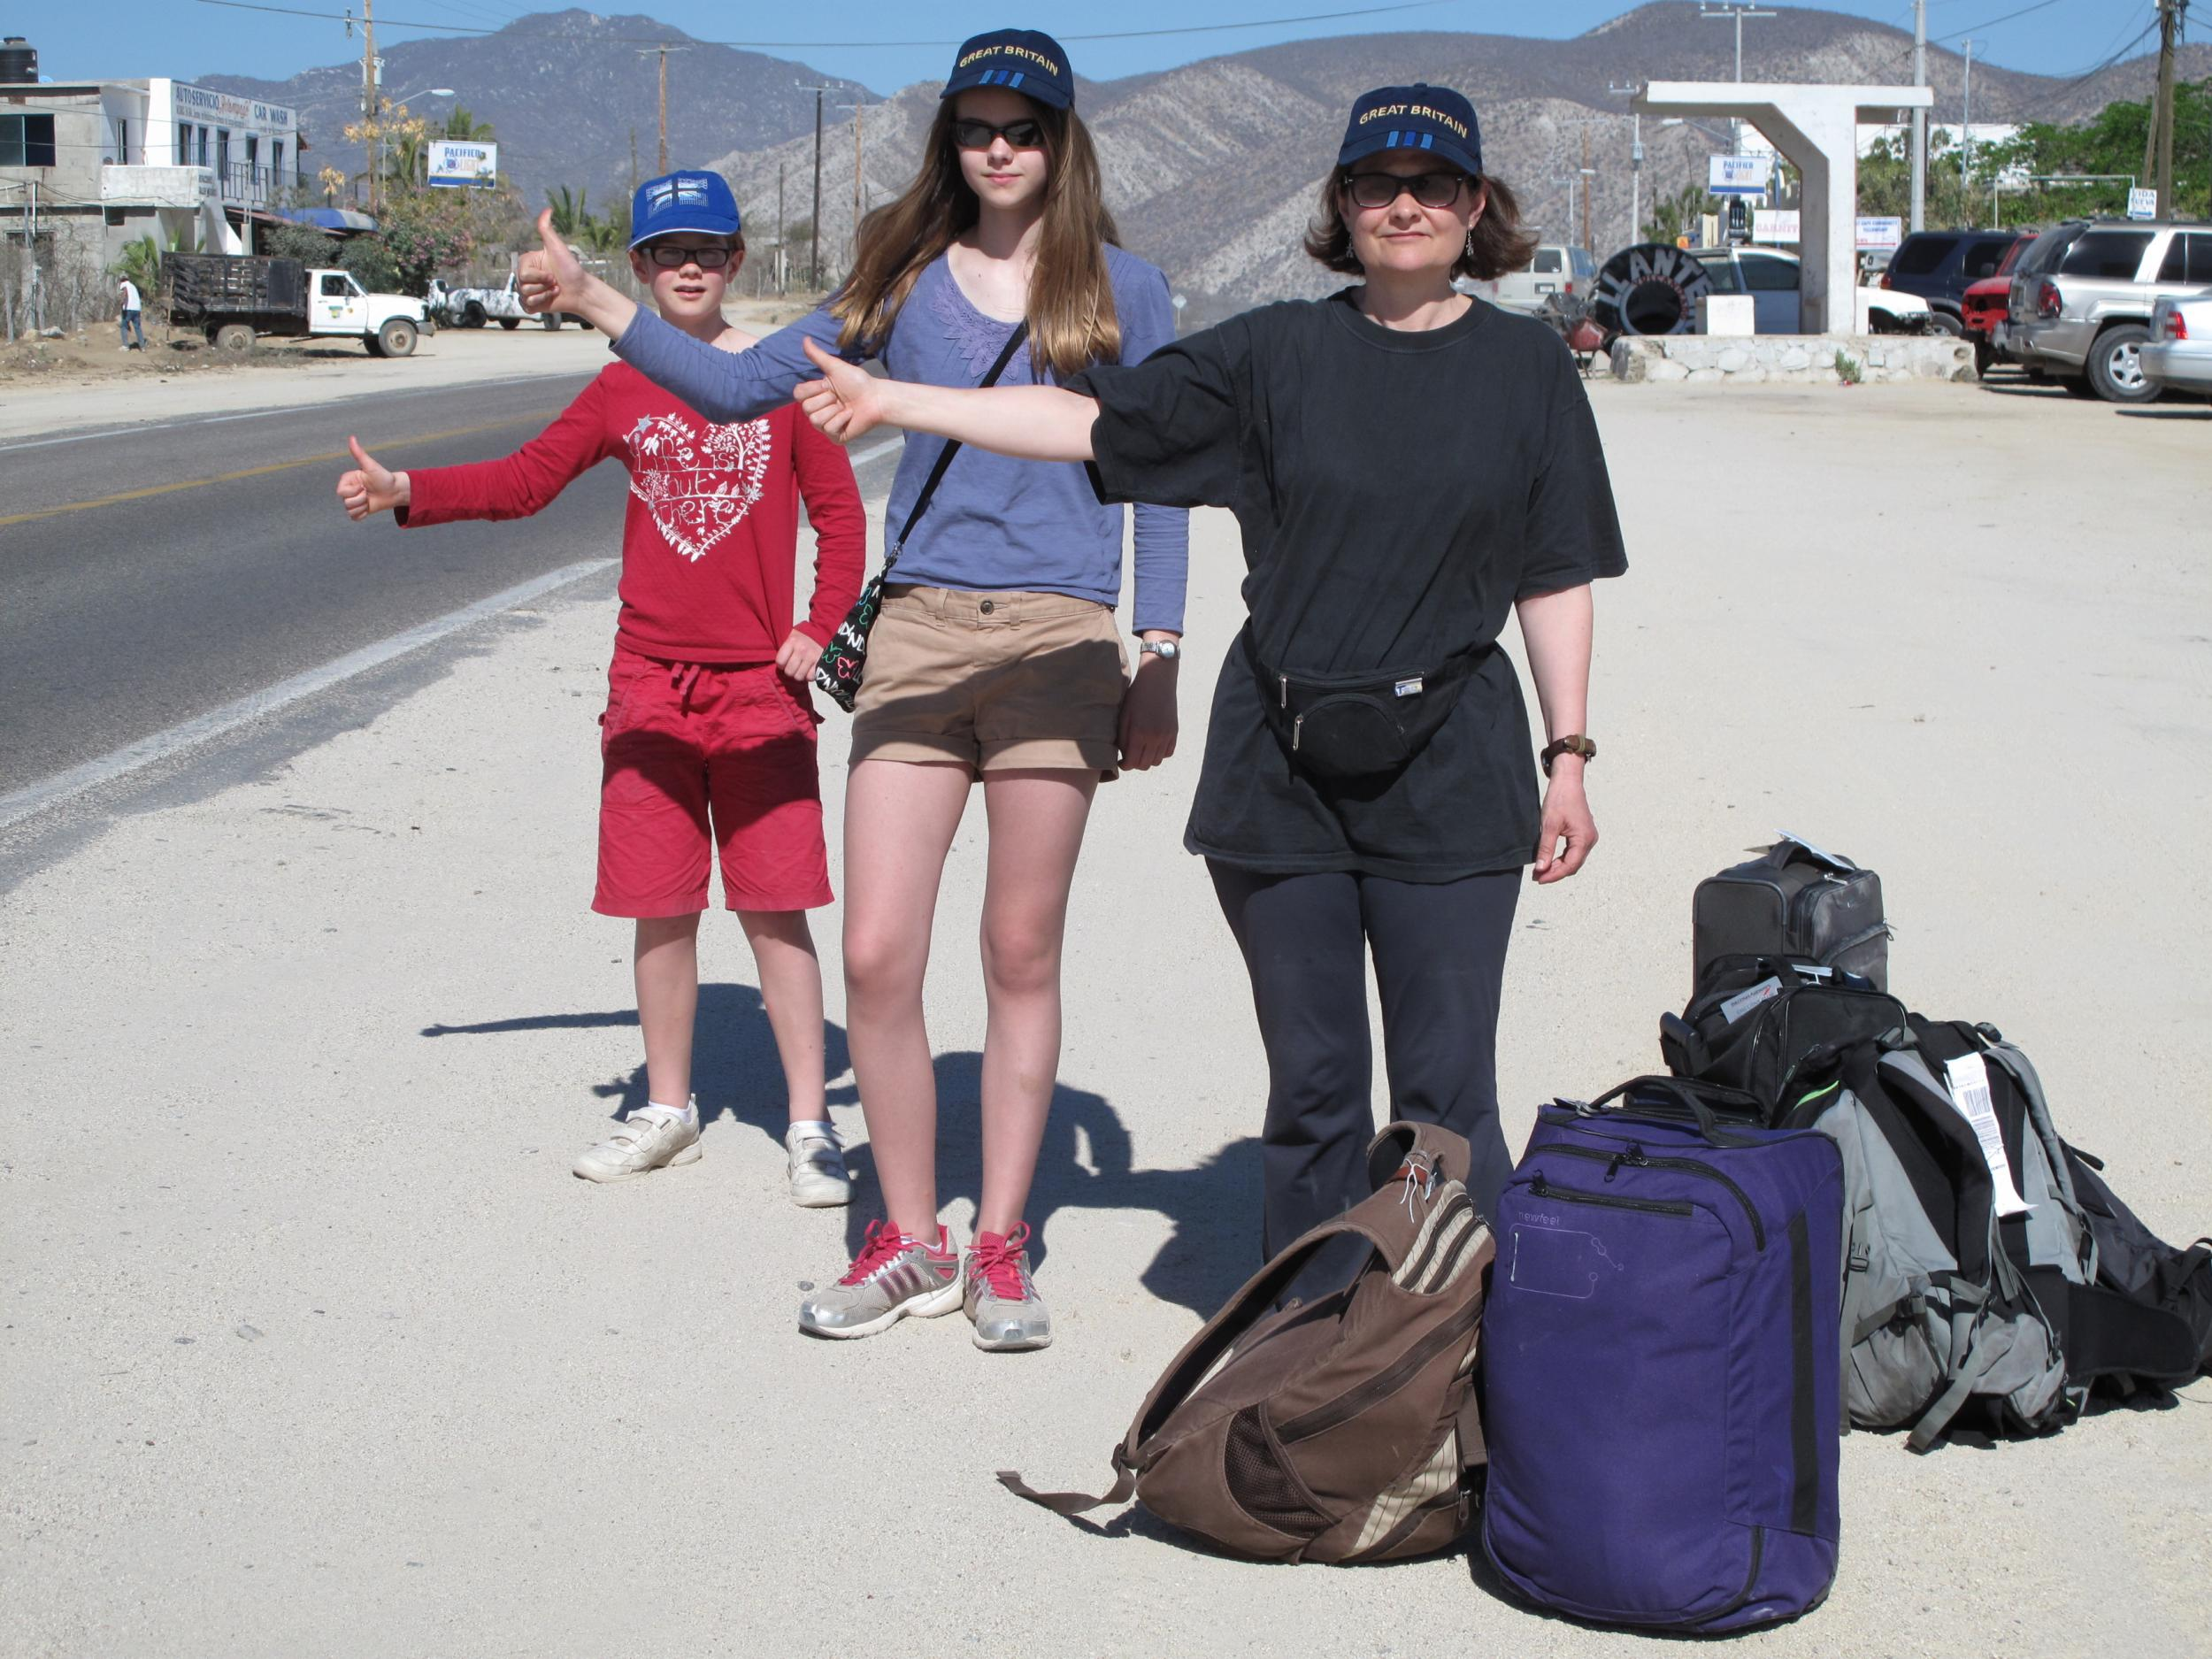 familyhitchhiking-jpg.47501_How Hitchhiking Changed in 40 Years_Hitchhiking_Squat the Planet_9:53 PM